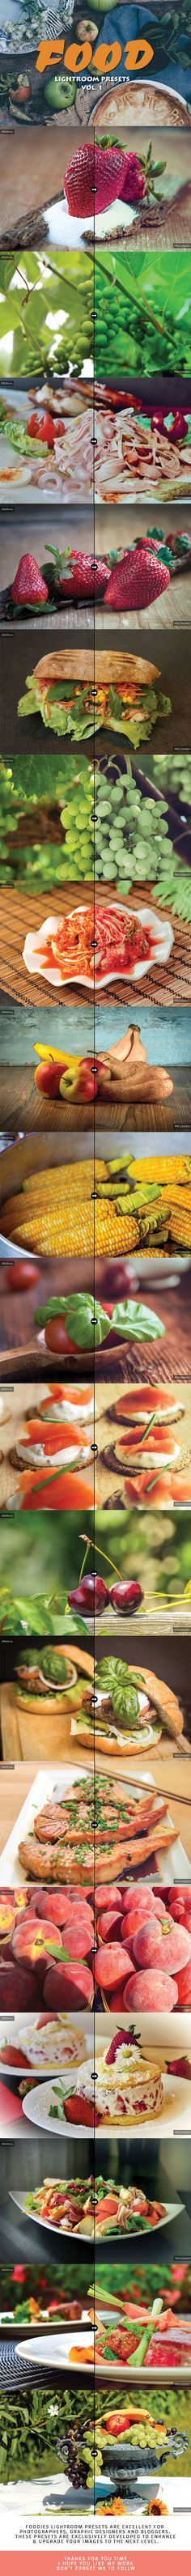 20 Food Lightroom Presets Ver. 1 by creativewhoa Food Lightroom Presets collection is a set of 20 presets for Adobe Lightroom that helps food photographers to make their shots yu